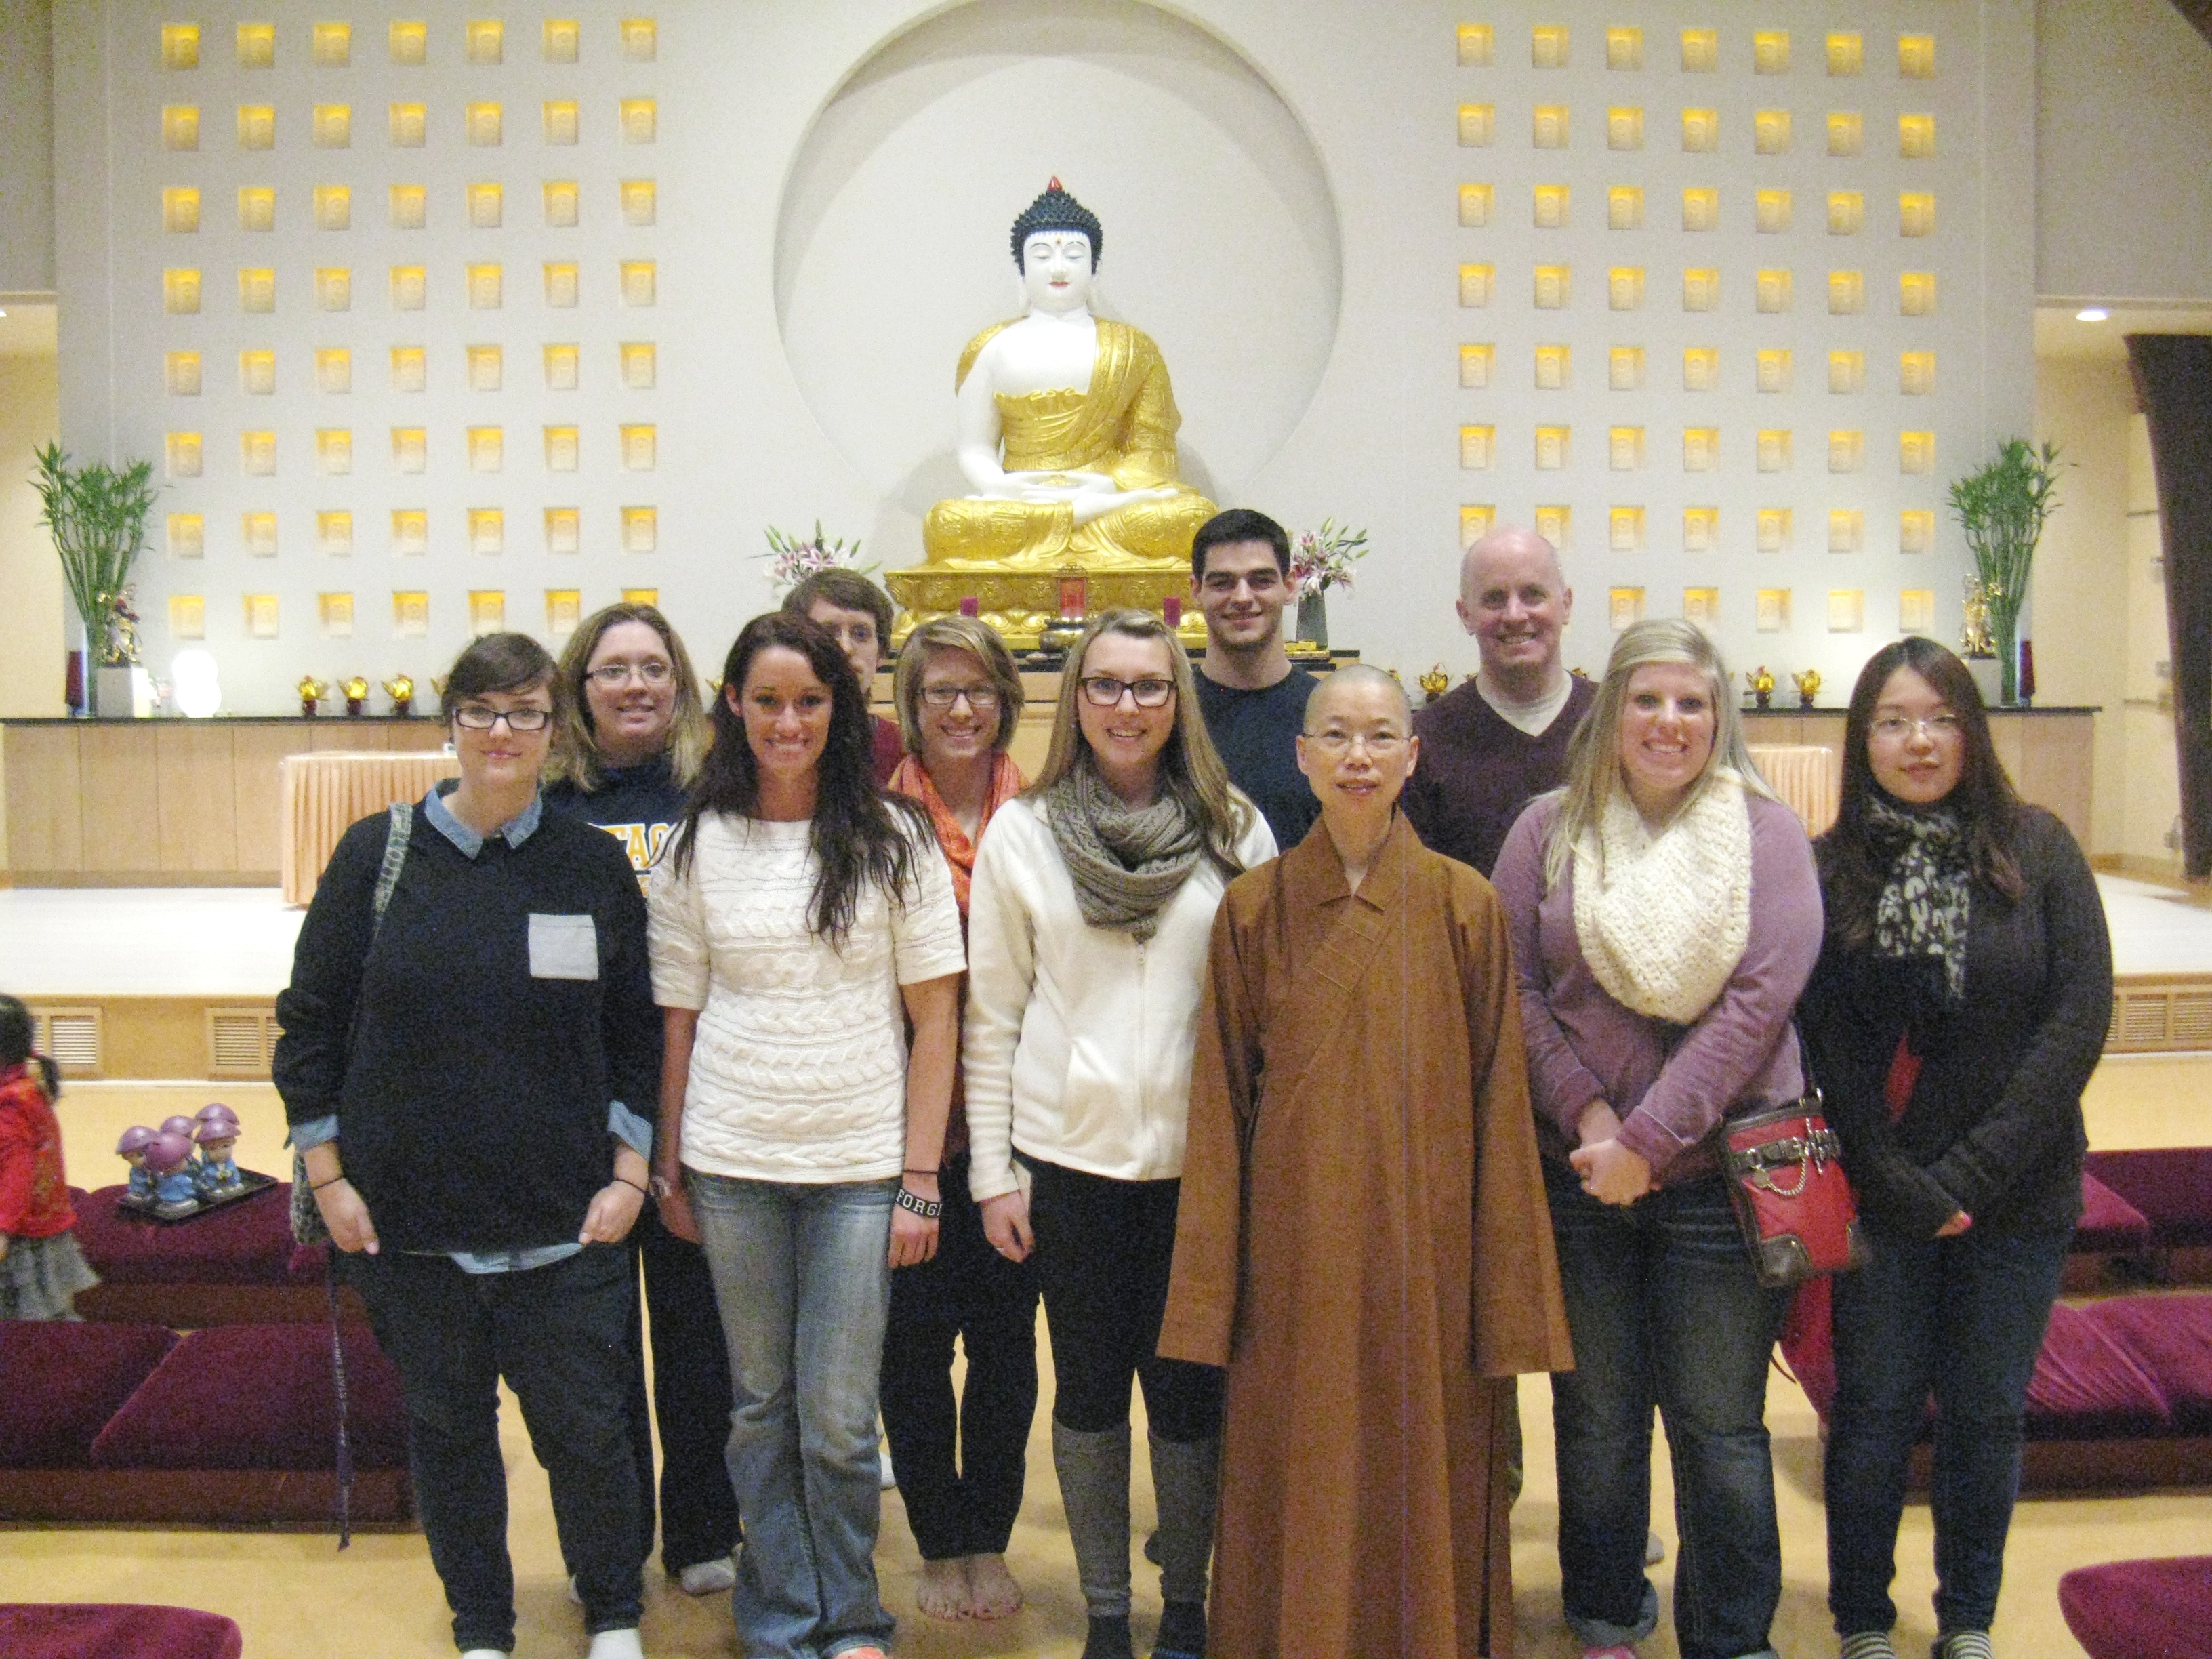 Visiting the Fo Guan Shan St. Louis Buddhist Center